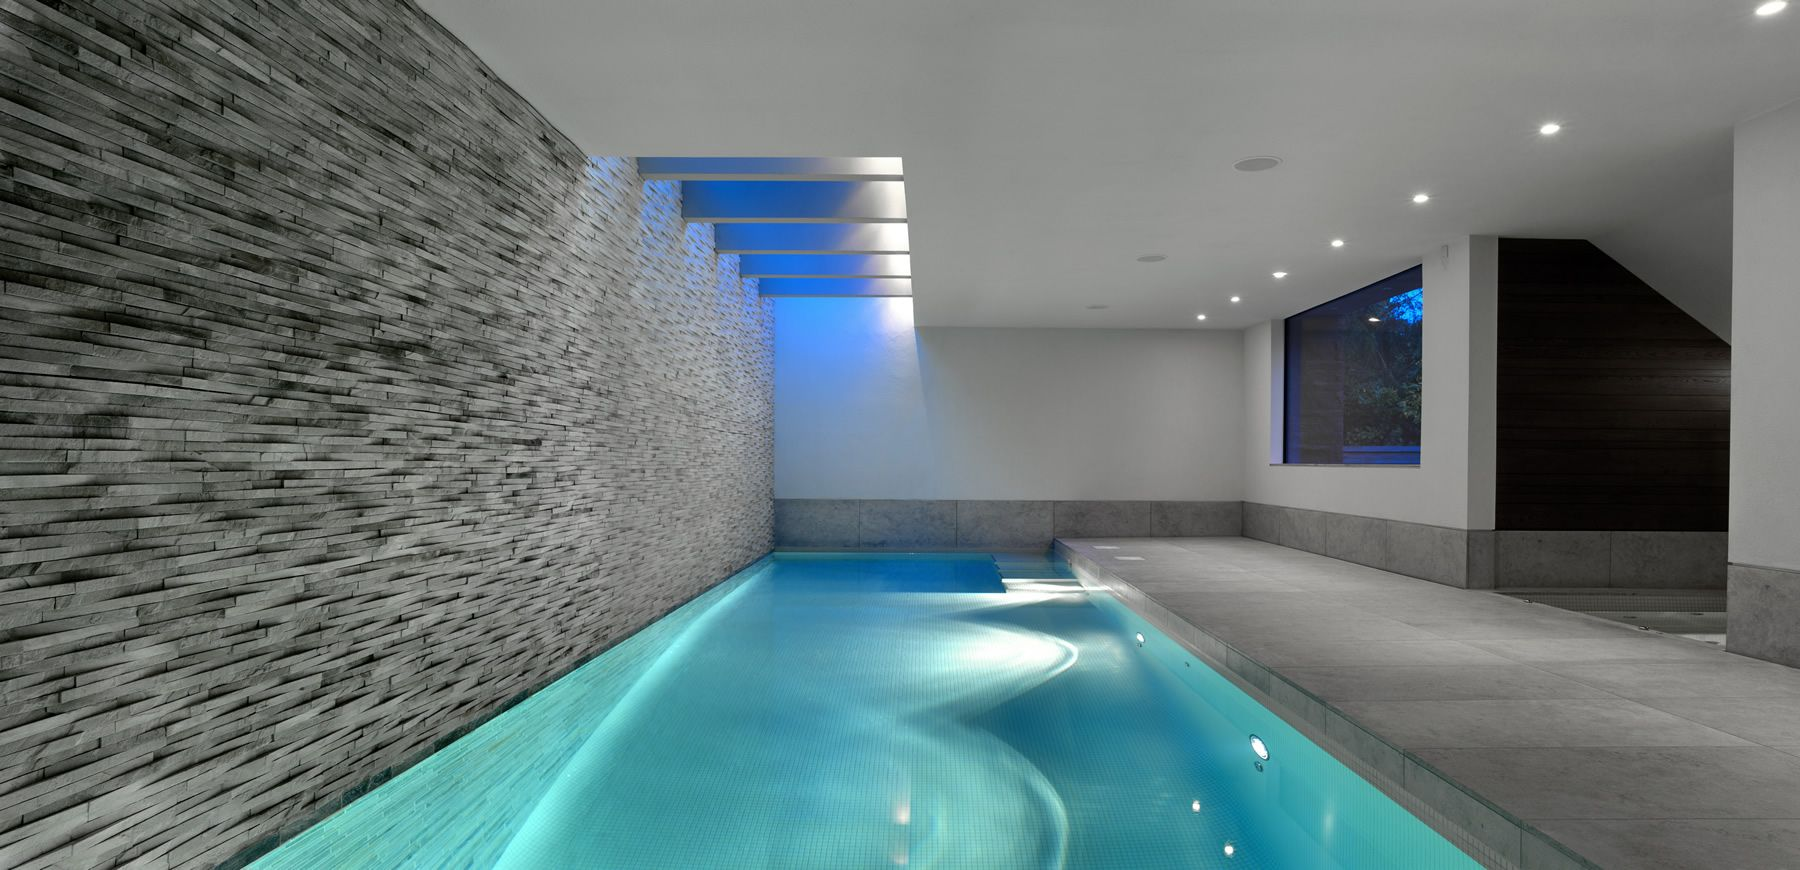 Astounding indoor swimming pool design image 381 50 for Modern house designs with indoor pool